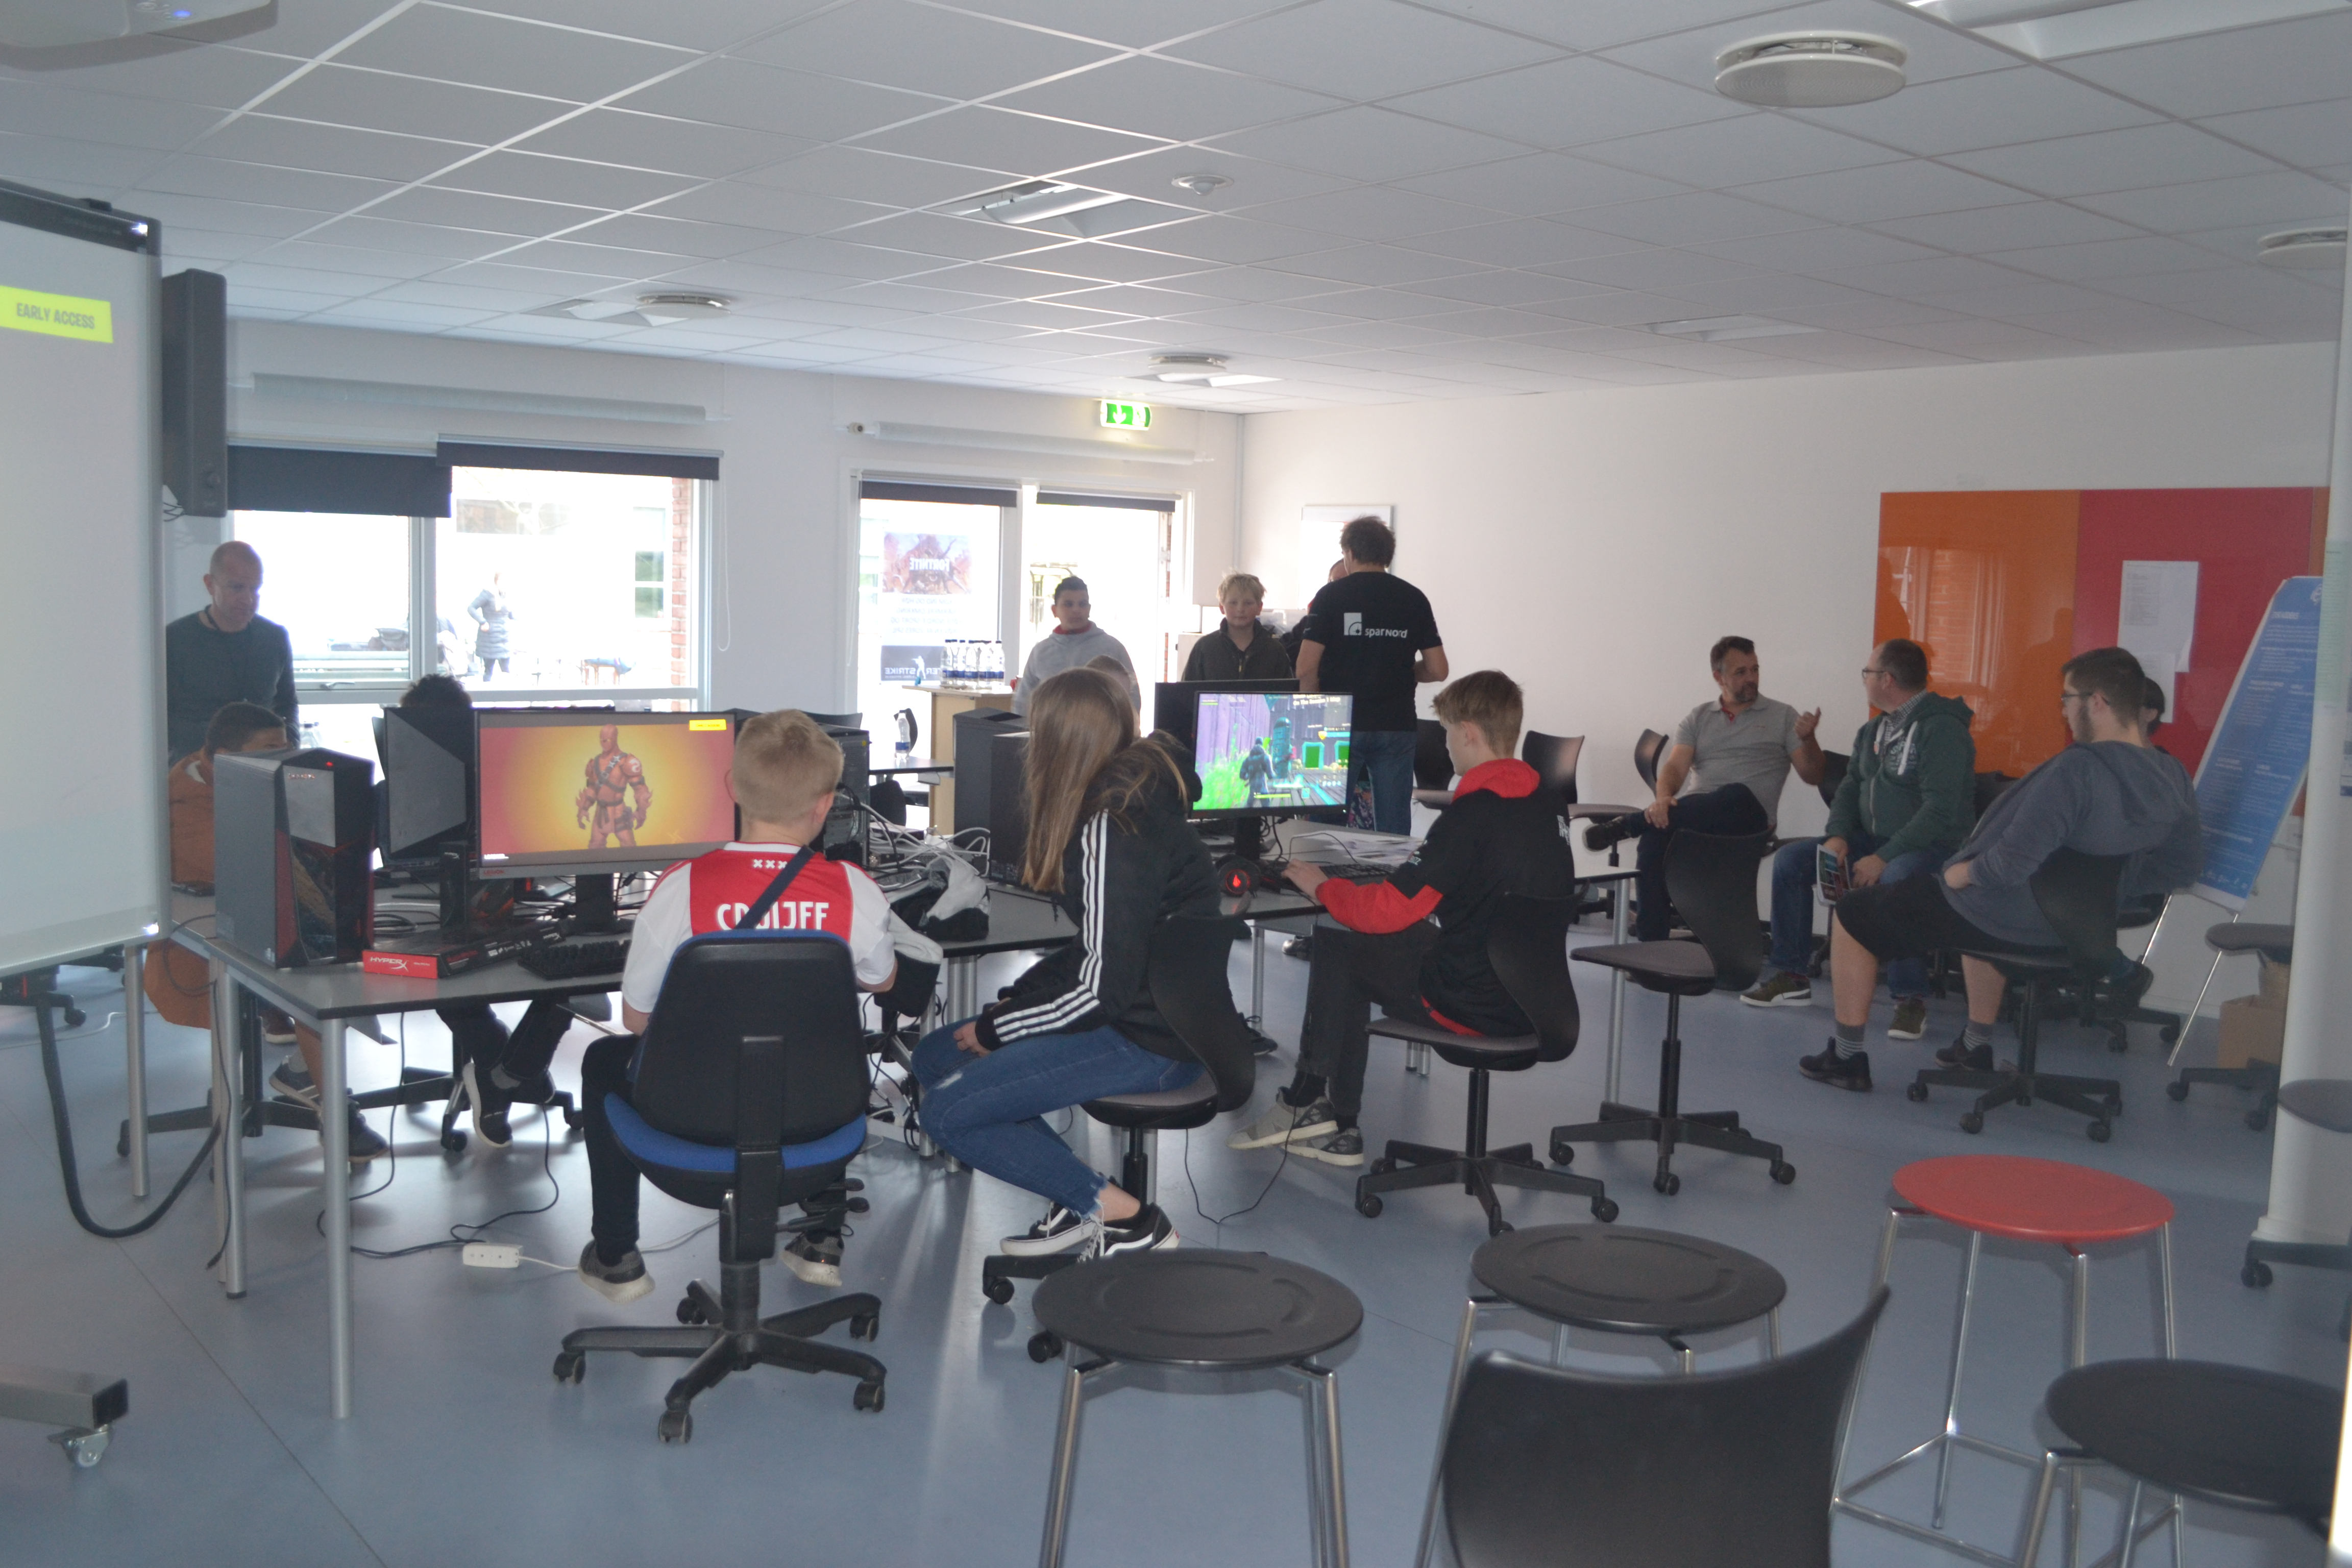 Computerspil (Fortnite) hos Center for Dansk og Integration